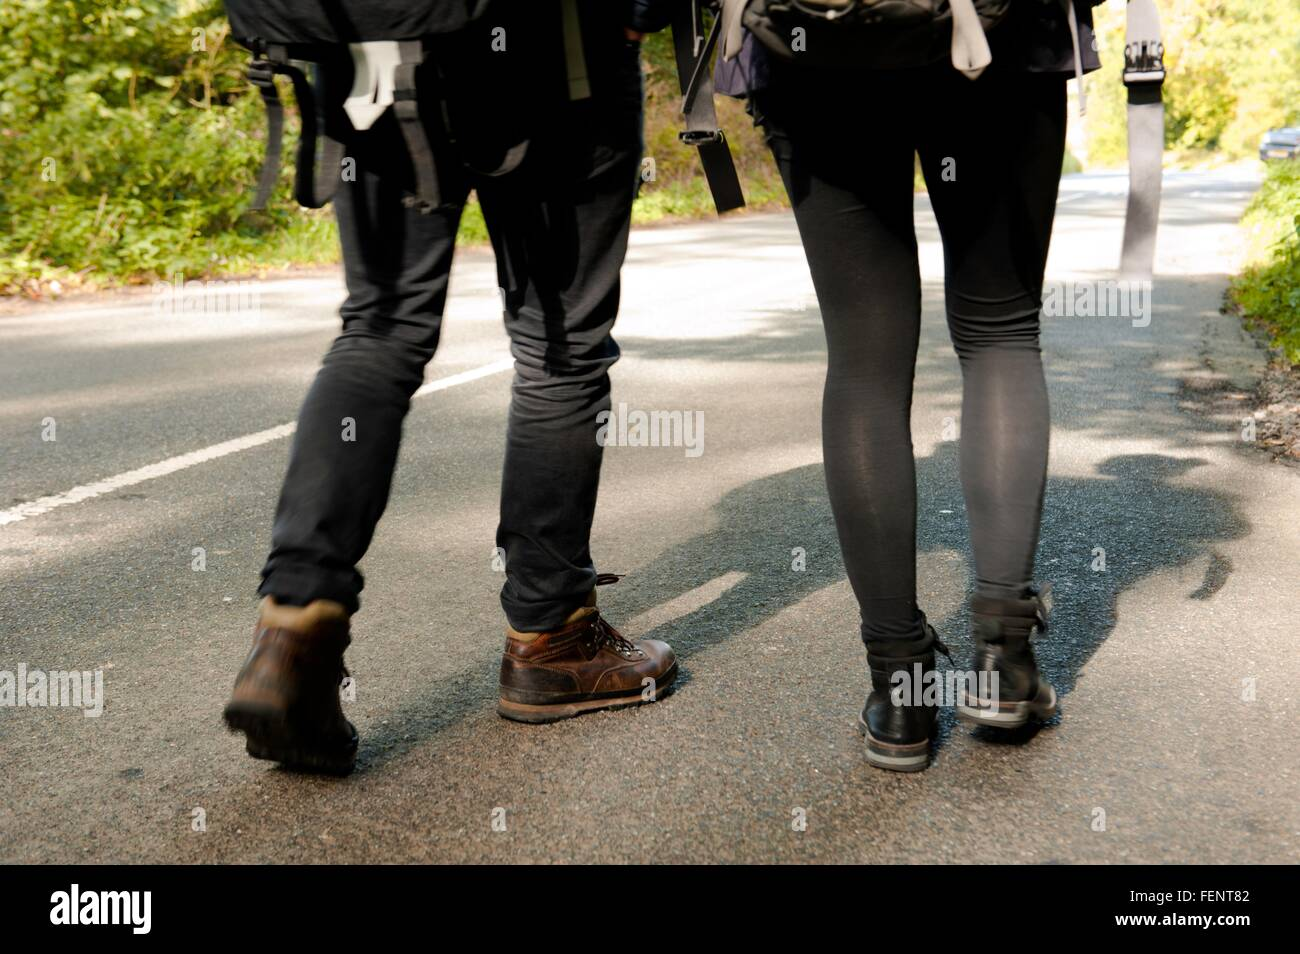 Waist down rear view of young hiking couple on rural road - Stock Image